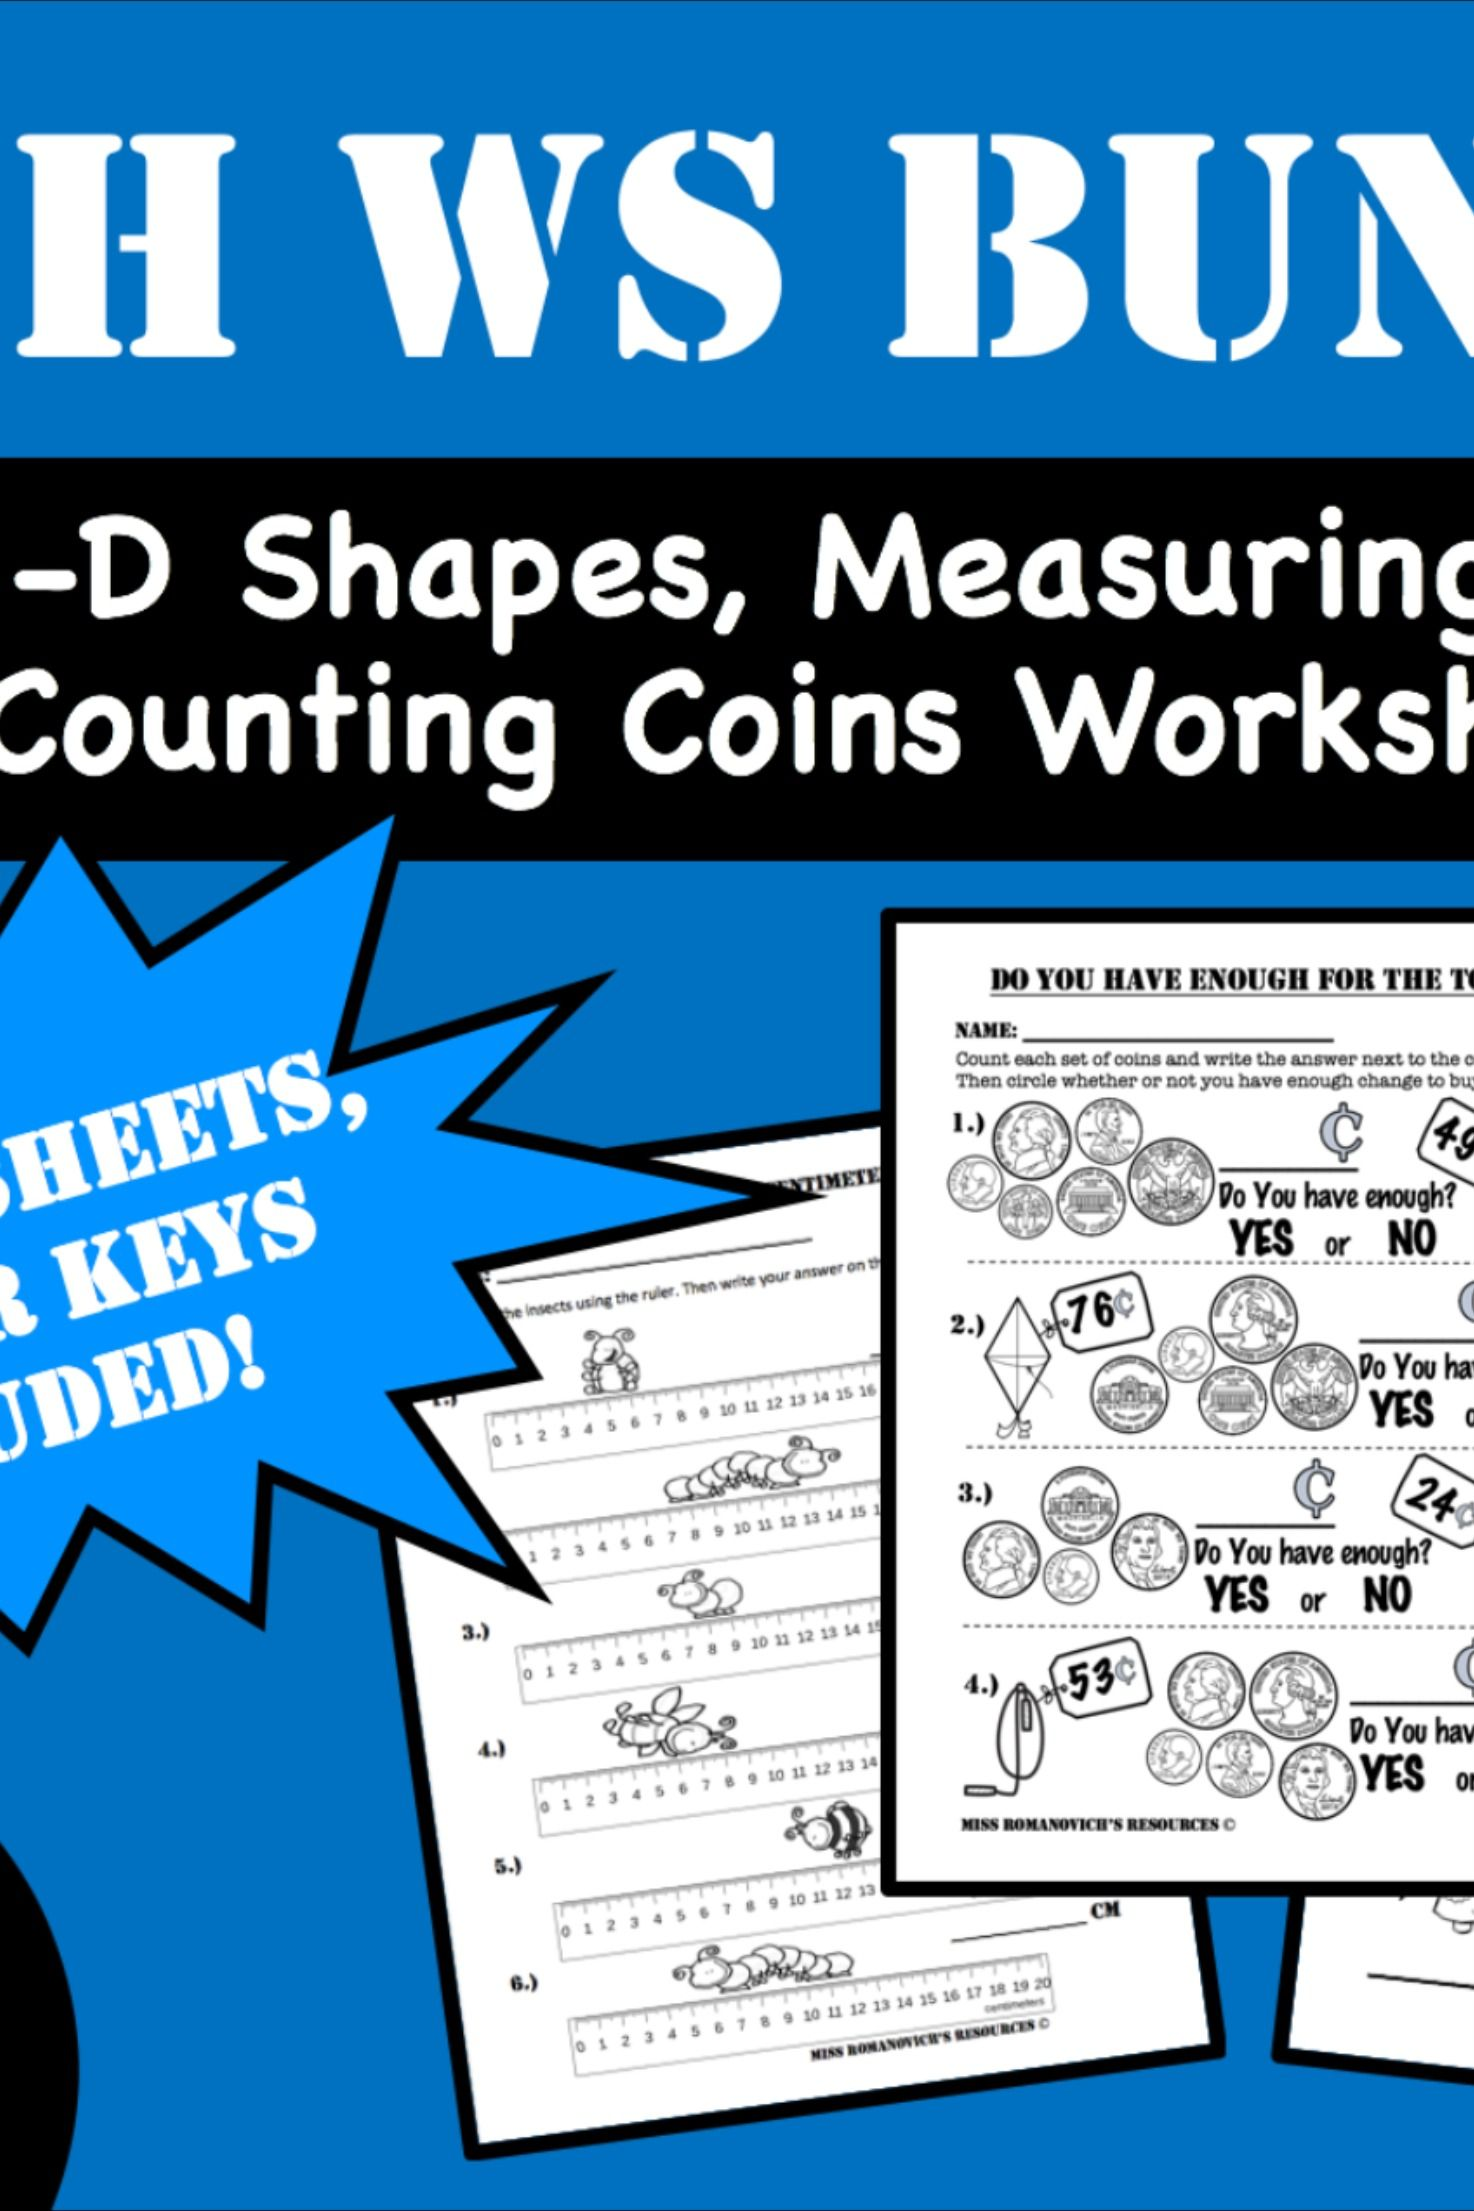 Bundle 2 D Shapes 3 D Shapes Counting Coins And